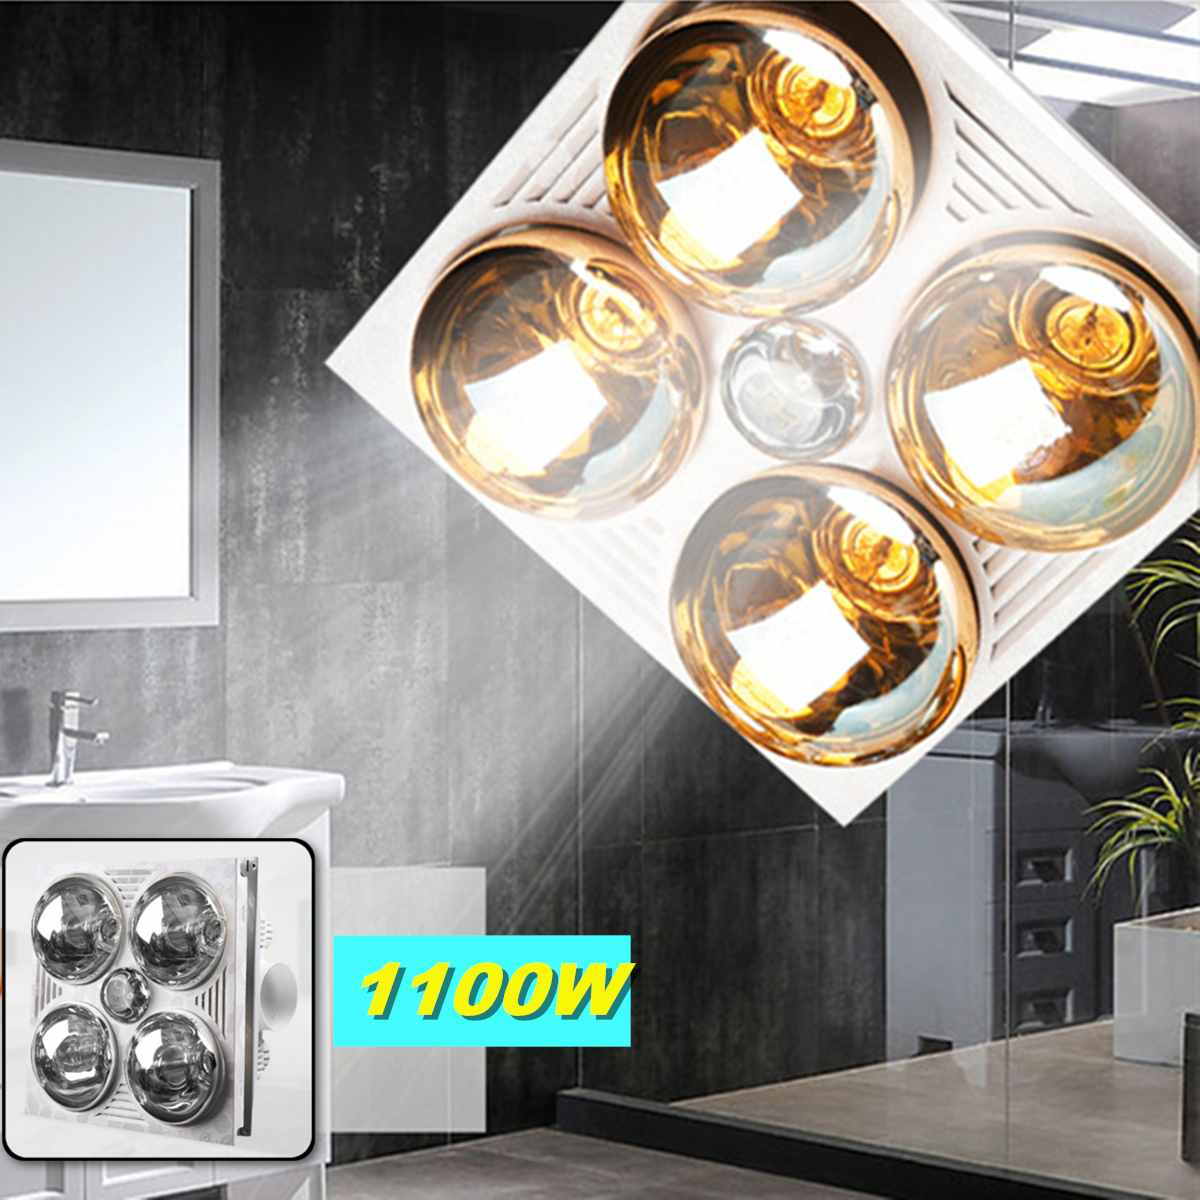 3 in 1 multifunctional bathroom heater exhaust fan with 4 heating elements led panel light ceiling light built in chandelier